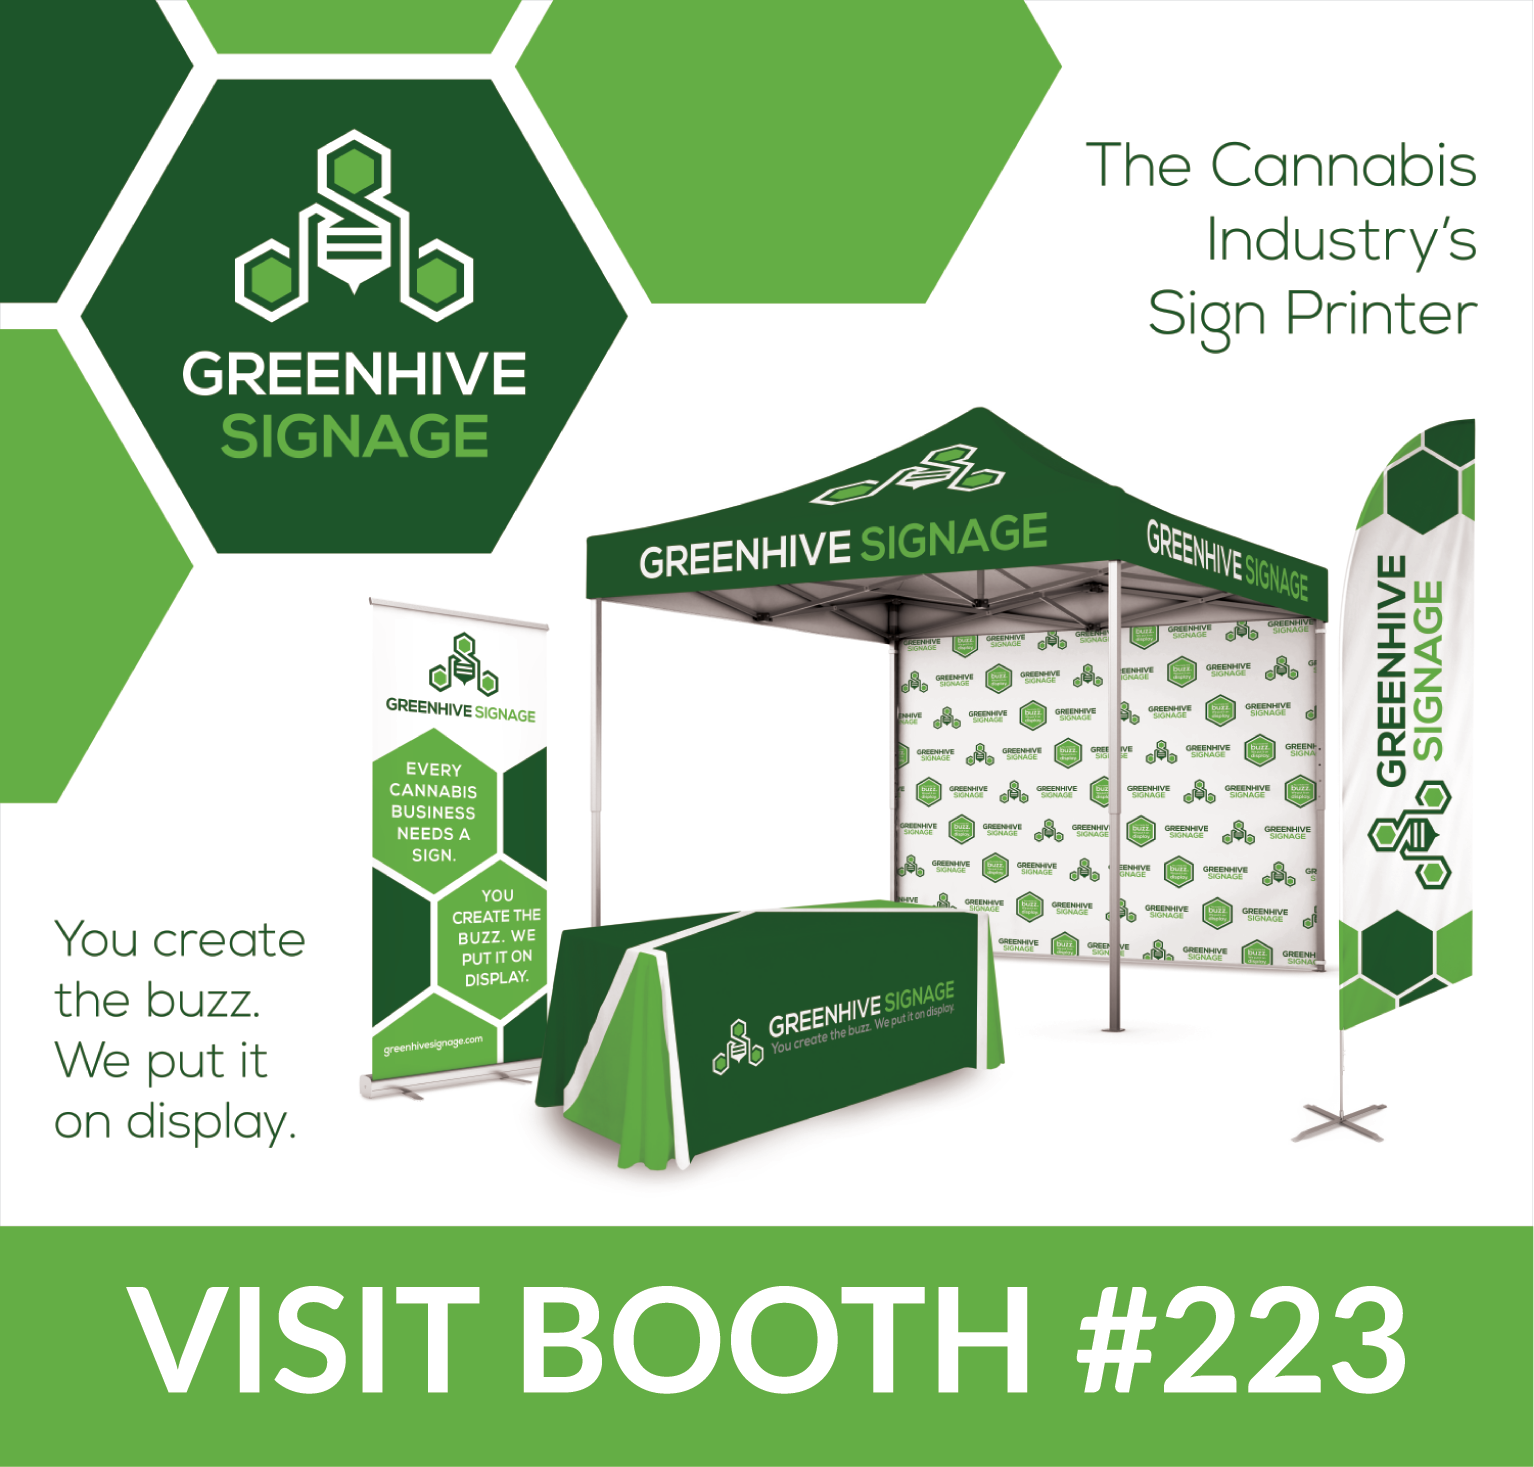 Greenhive Signage Inc. is set to put the cannabis industry on display at the Marijuana Business Conference and Expo in Las Vegas, NV.